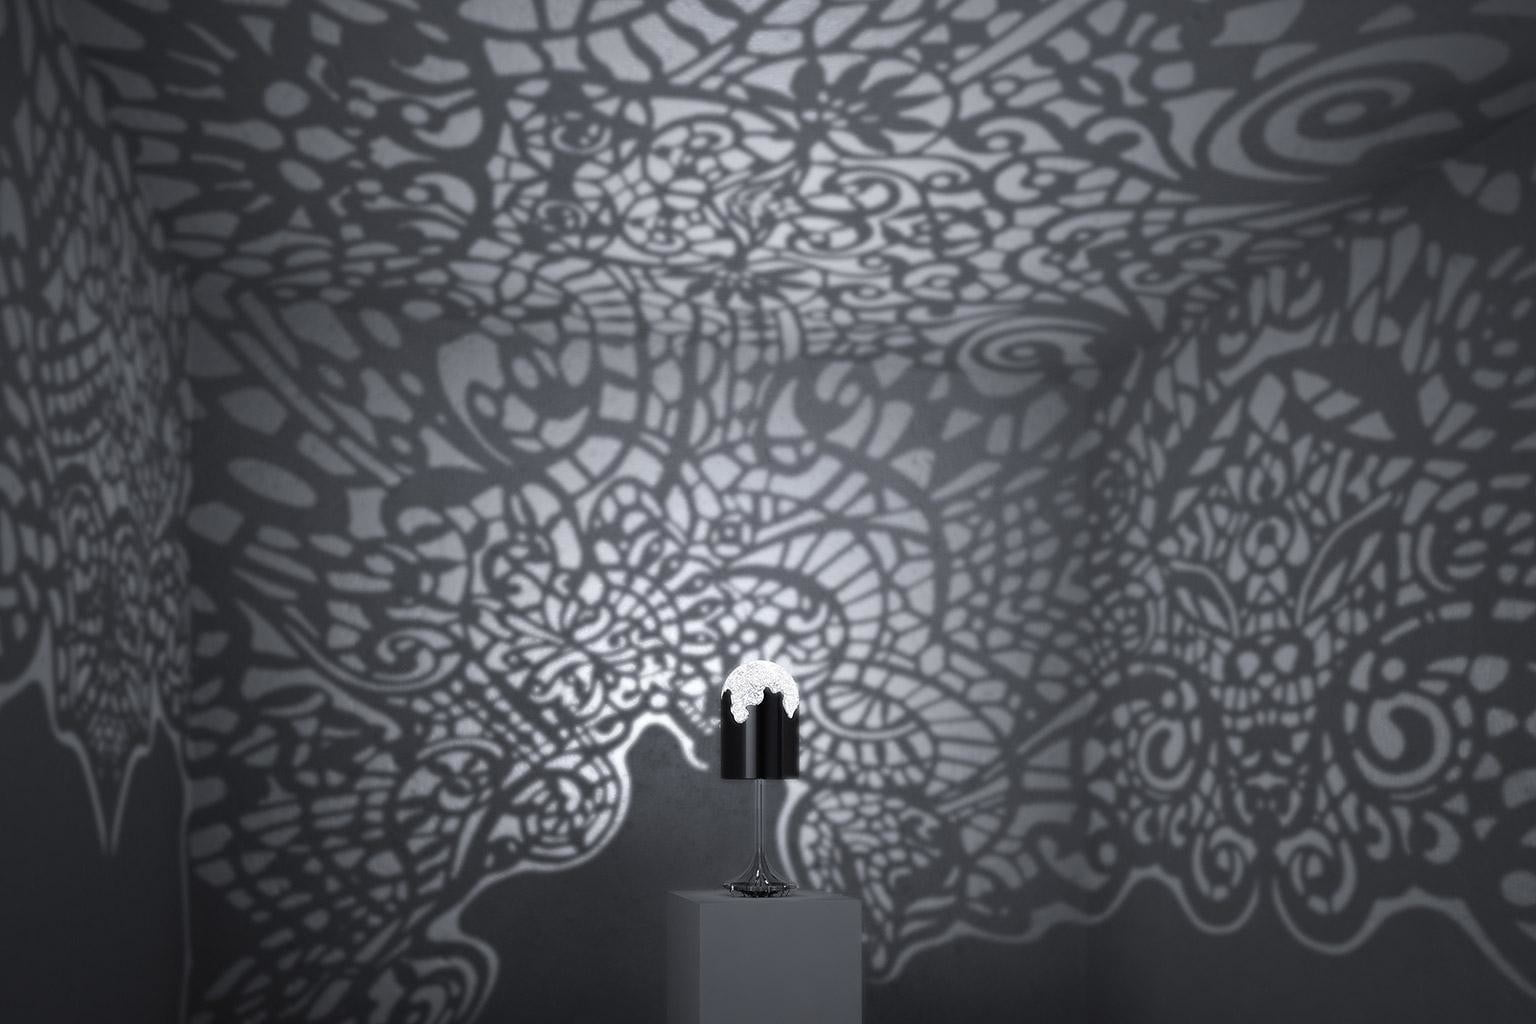 3D printed 'lacelamps' cast wild shadow patterns onto your walls ...